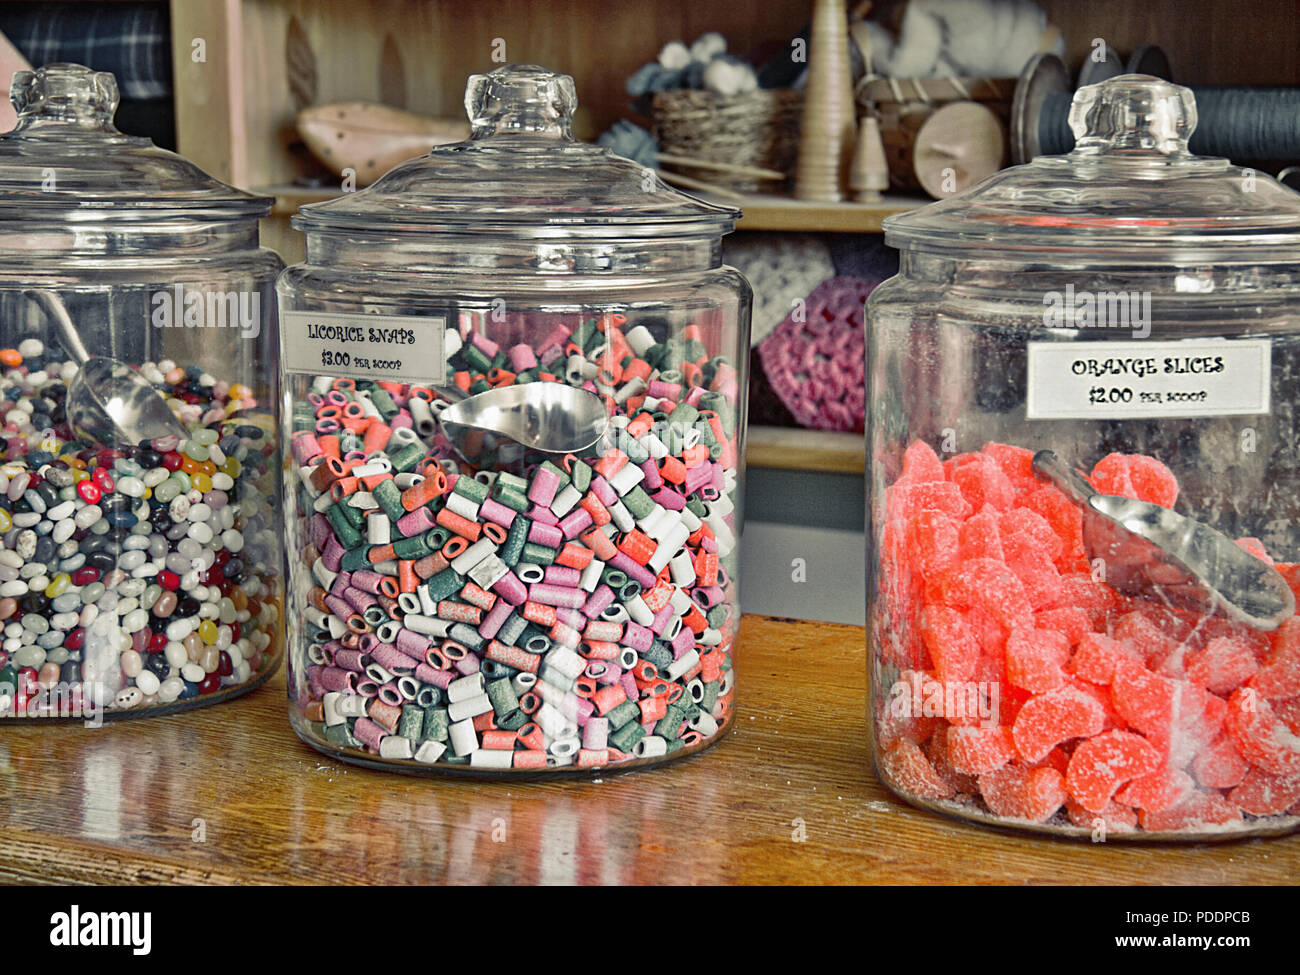 This still life of old-fashioned candy jars atop a shop